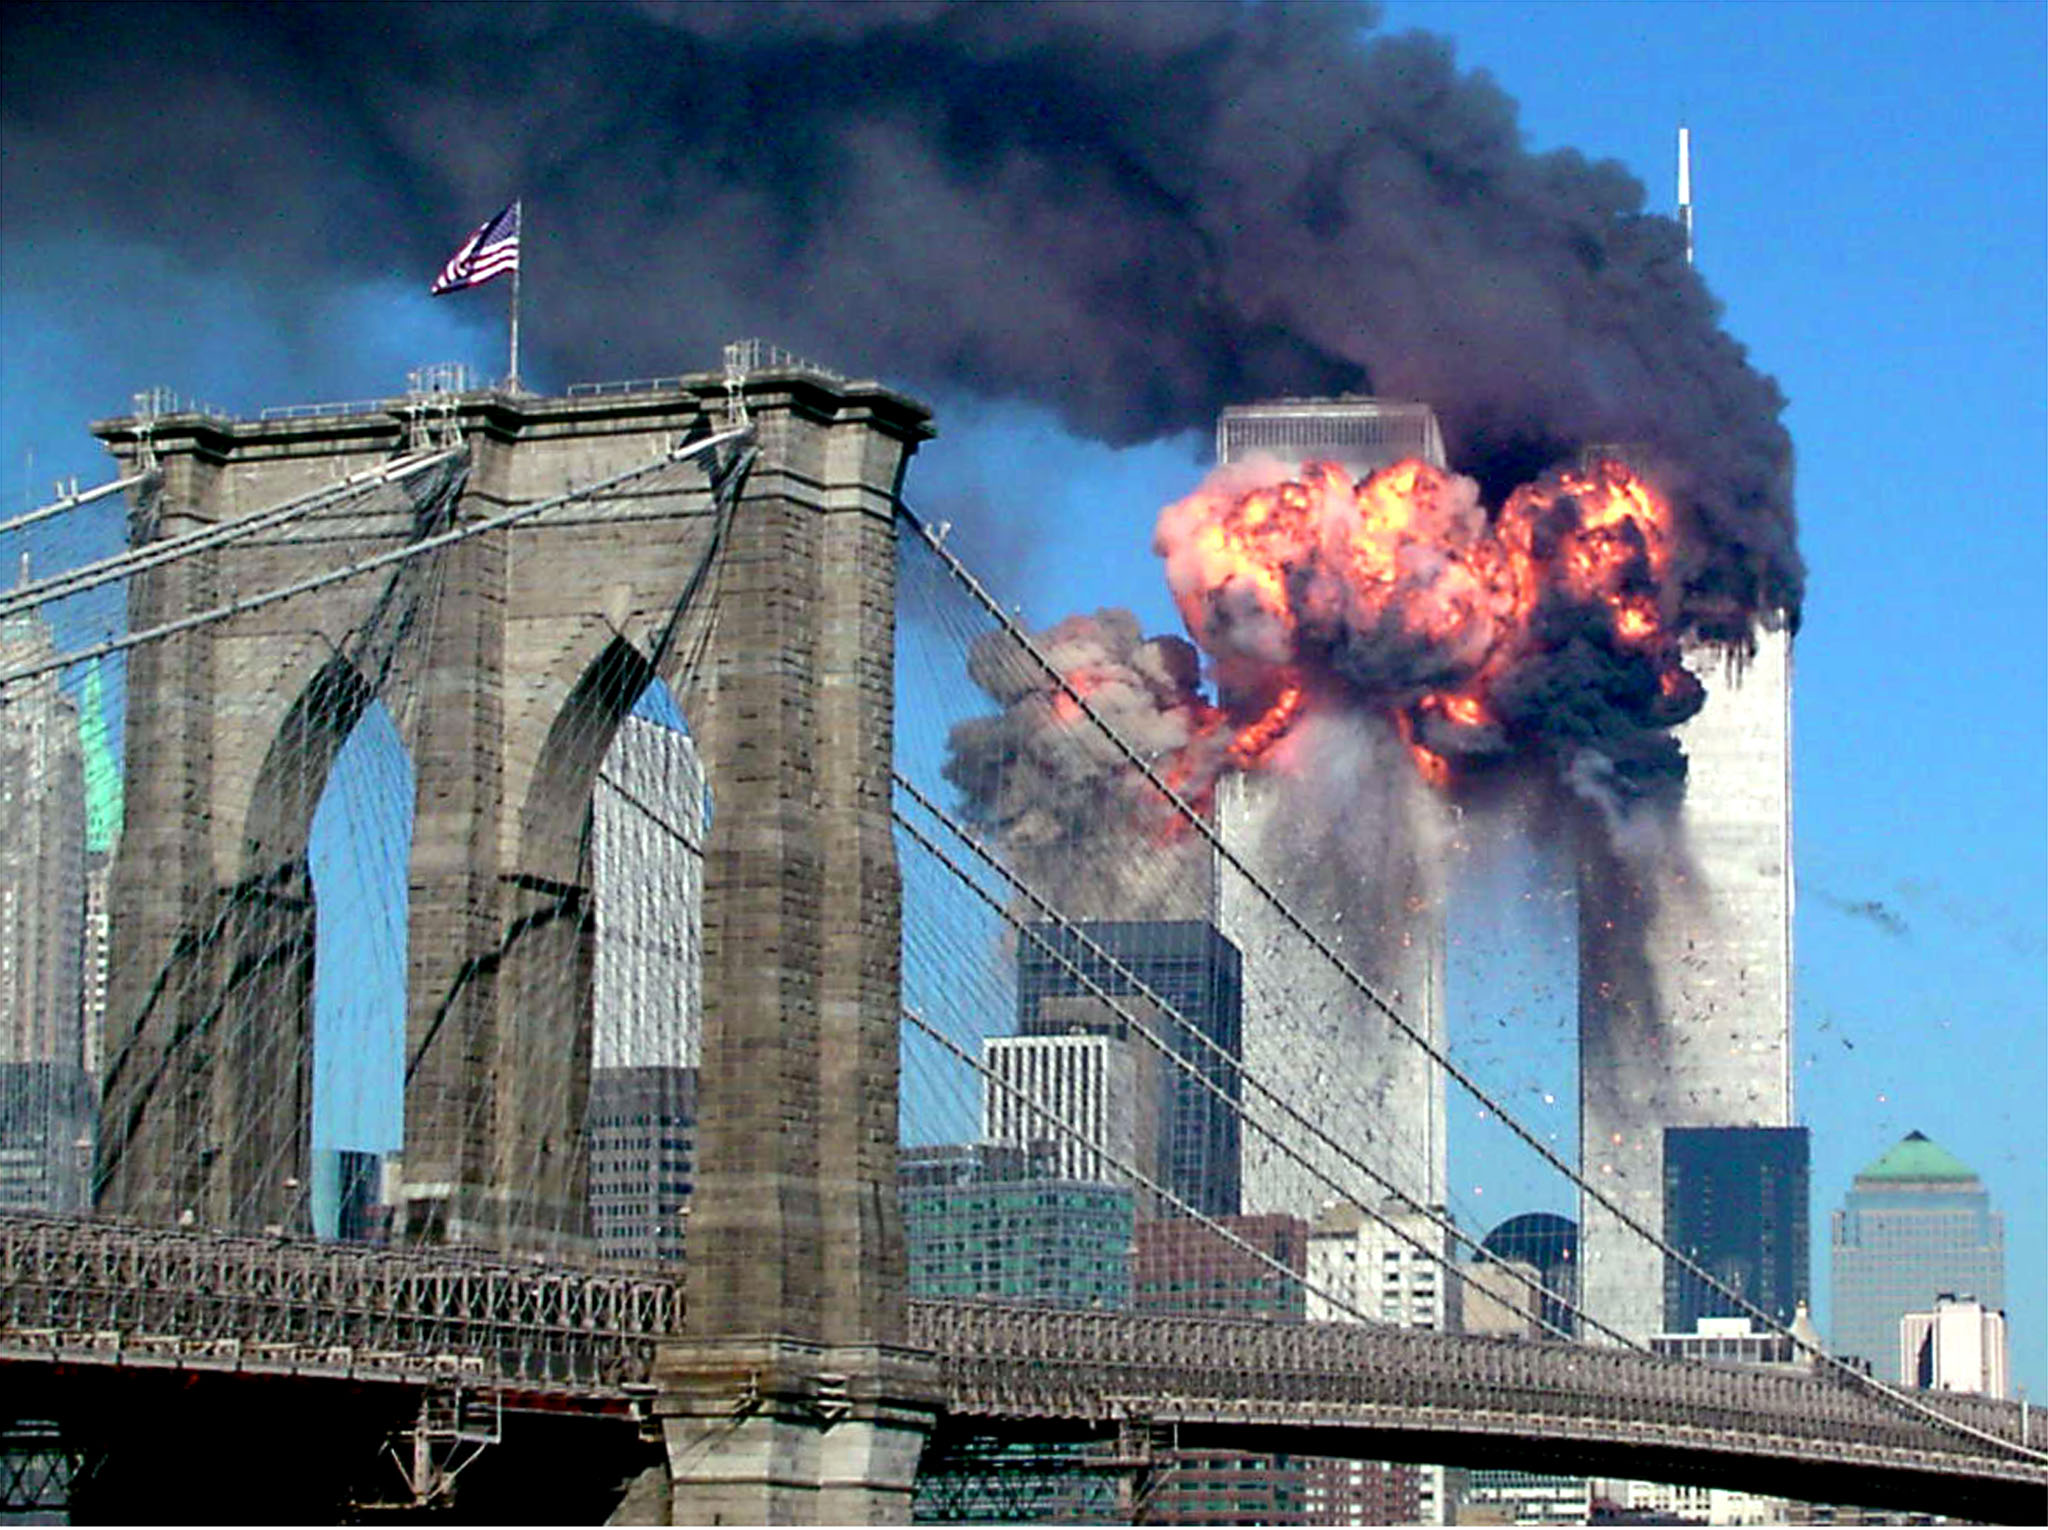 The second tower of the World Trade Center explodes into flames after being hit by a airplane, New York September 11, 2001 with the Brooklyn bridge in the foreground. Both towers of the complex collapsed after being hit by hijacked planes. REUTERS/Sara K. Schwittek